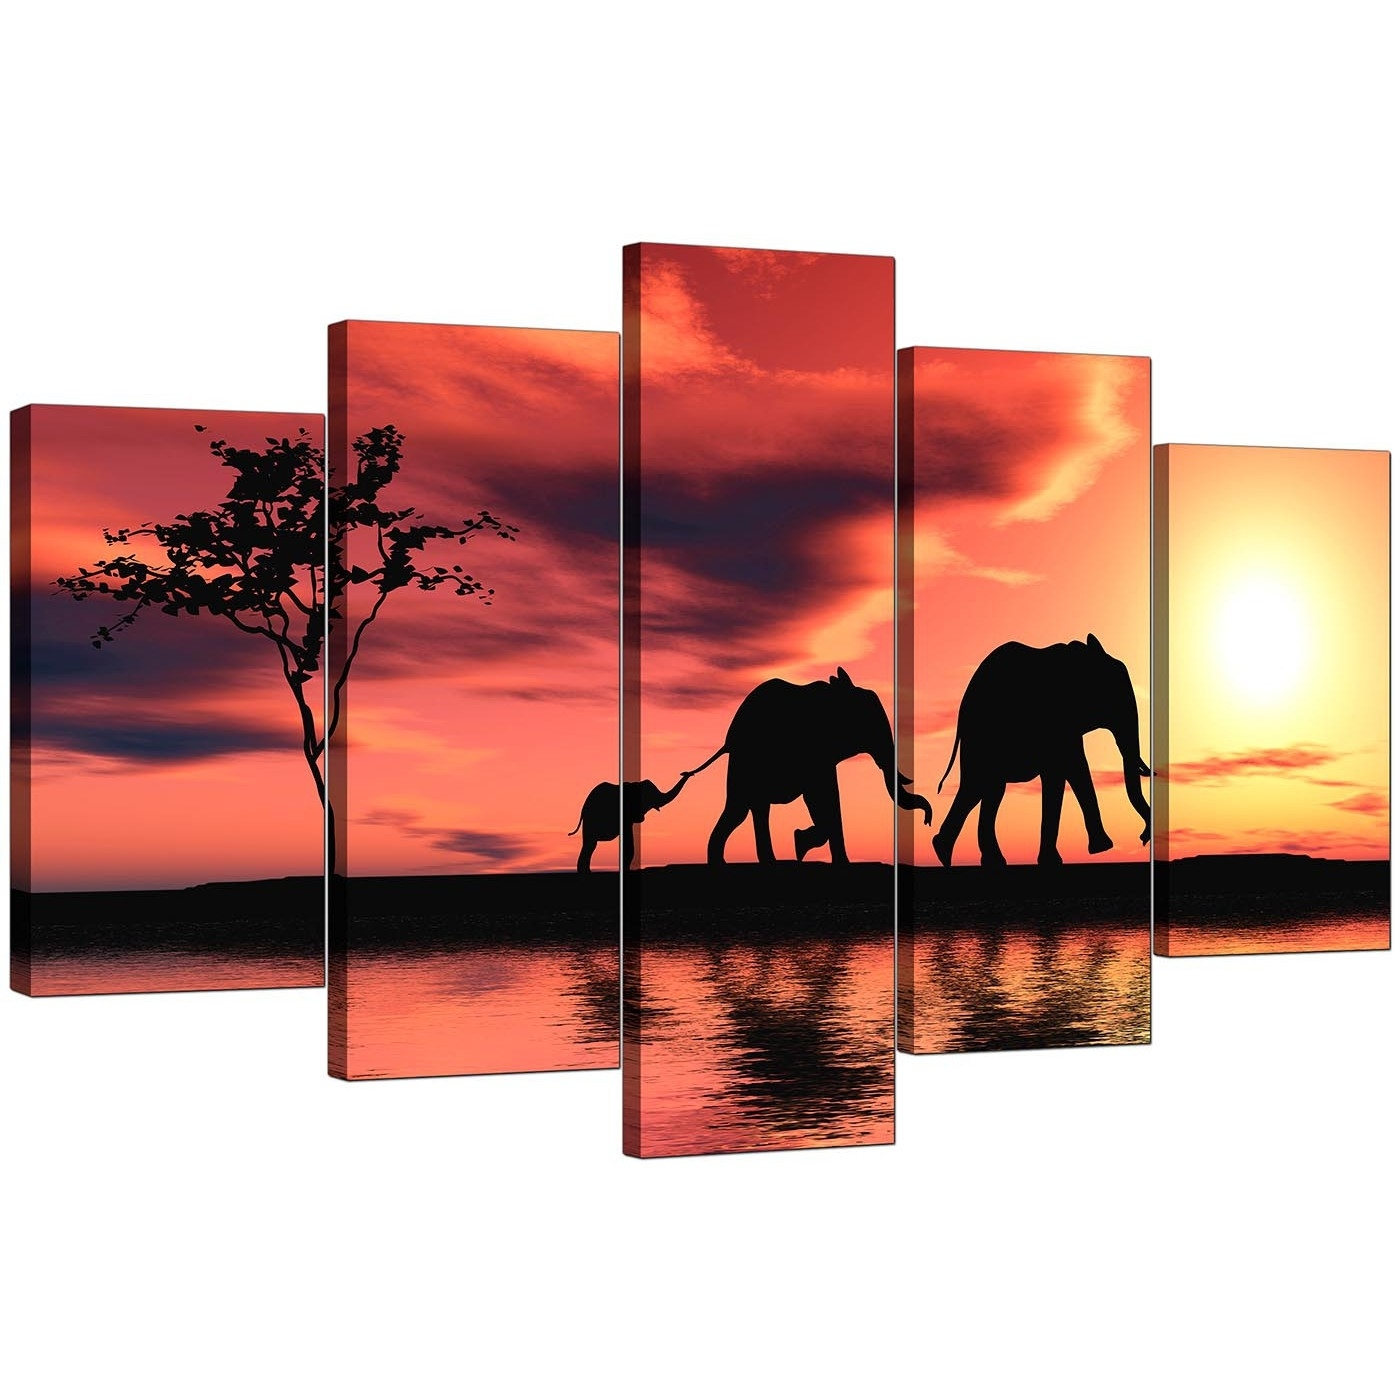 Extra Large Elephants Canvas Prints 5 Piece In Orange Regarding 2018 Orange Canvas Wall Art (View 9 of 15)